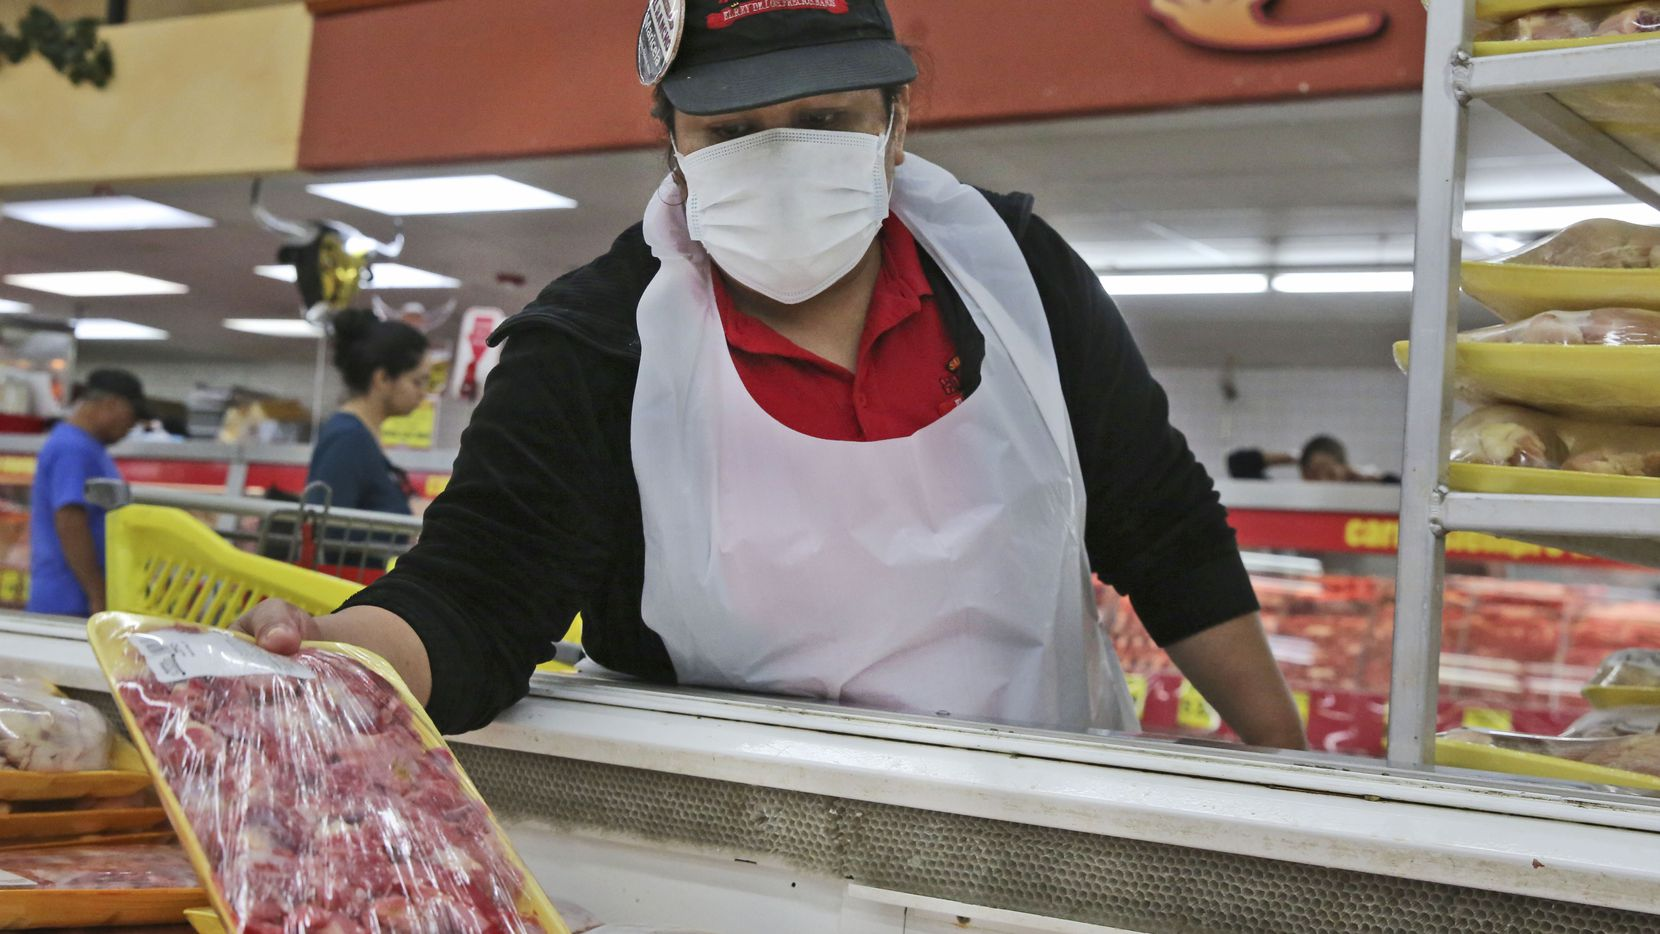 Marcela Martinez Salazar wears a mask while restocking at El Rancho grocery store in Dallas on March 26.